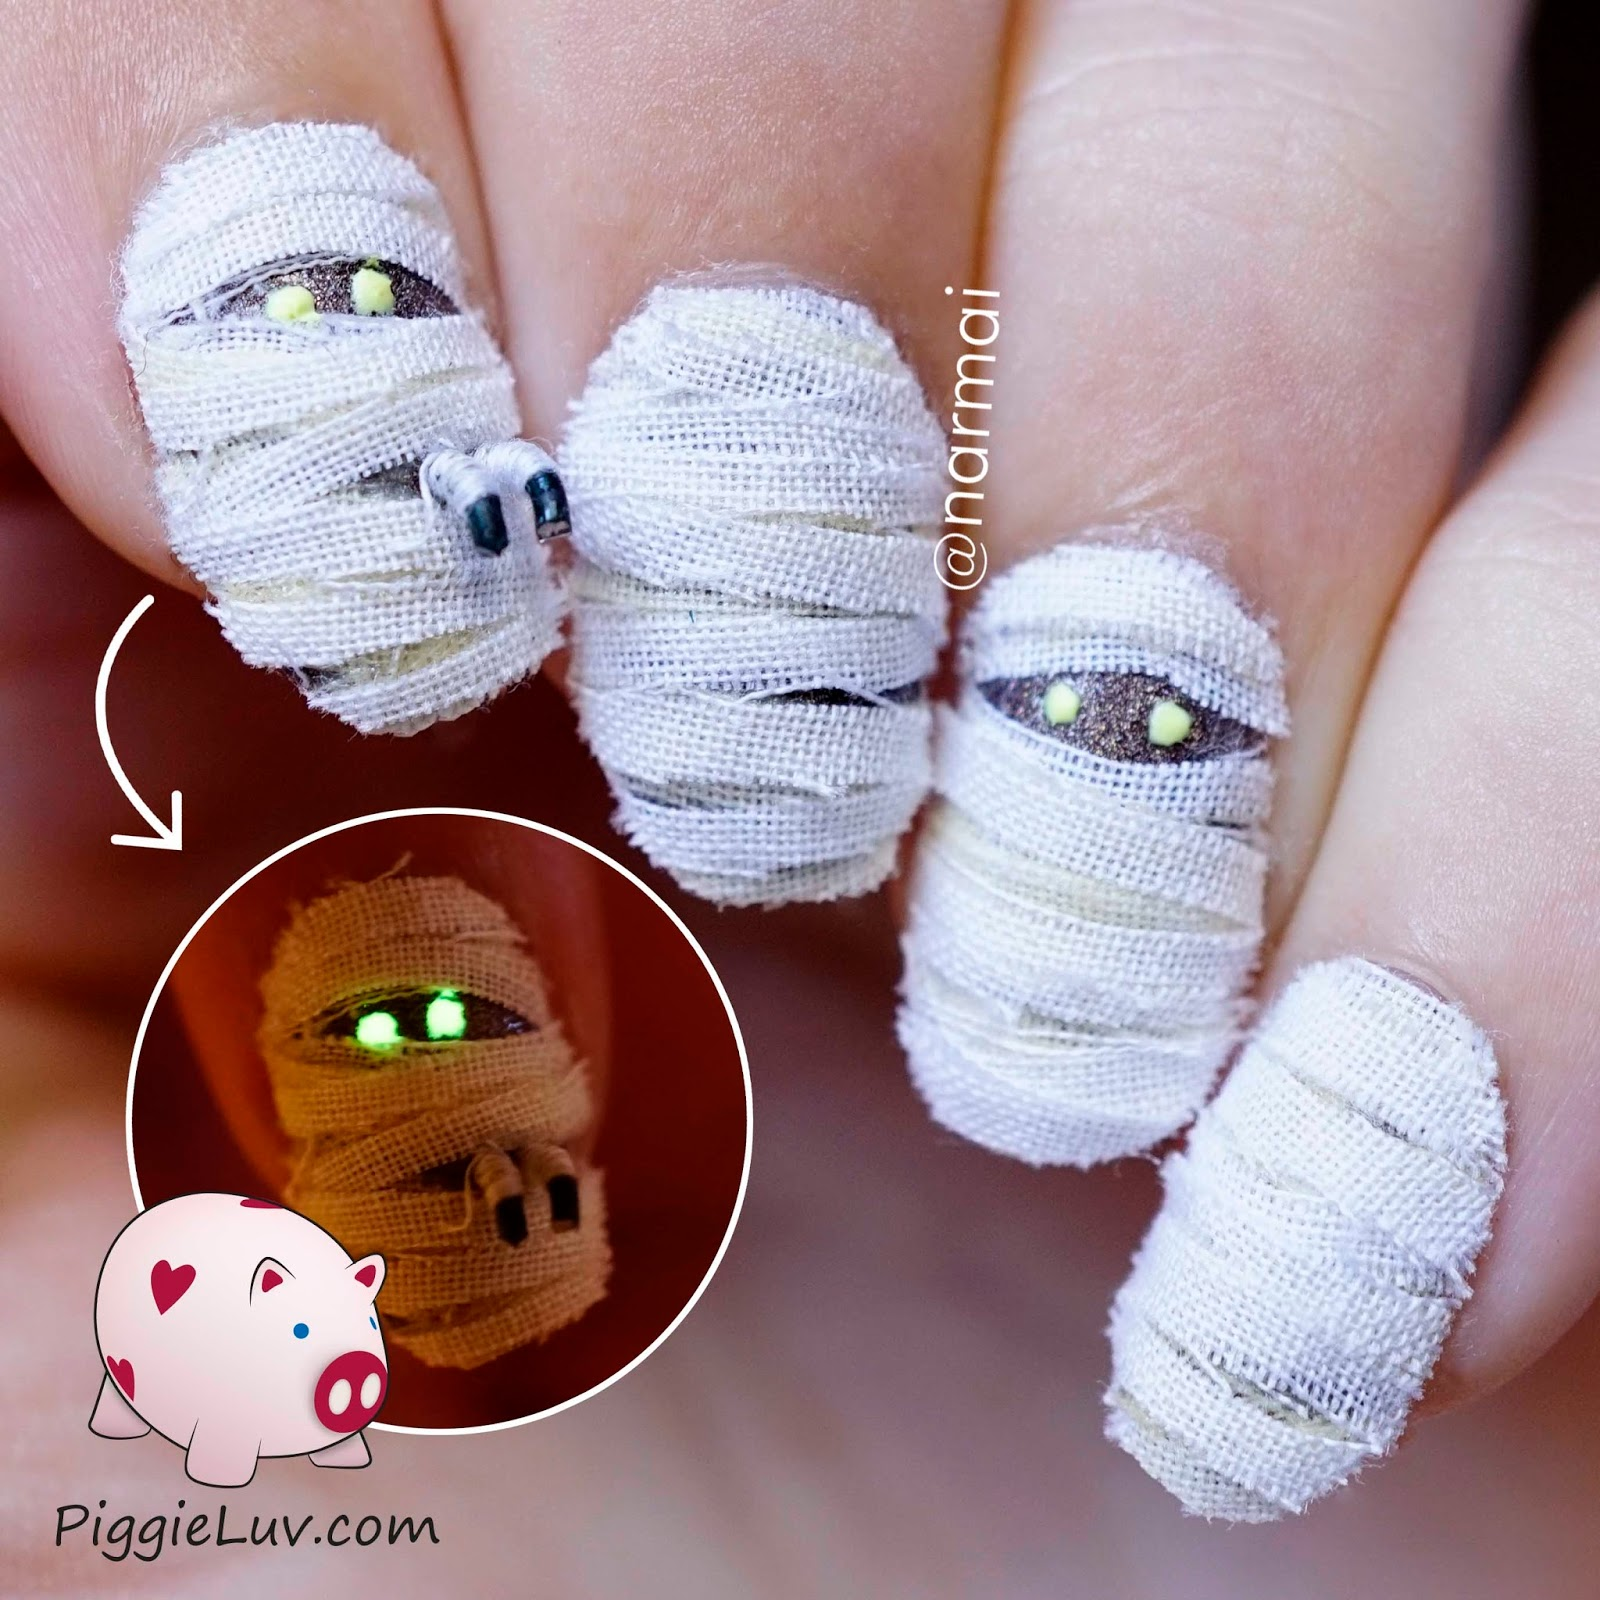 PiggieLuv: 3D mummy nail art for Halloween